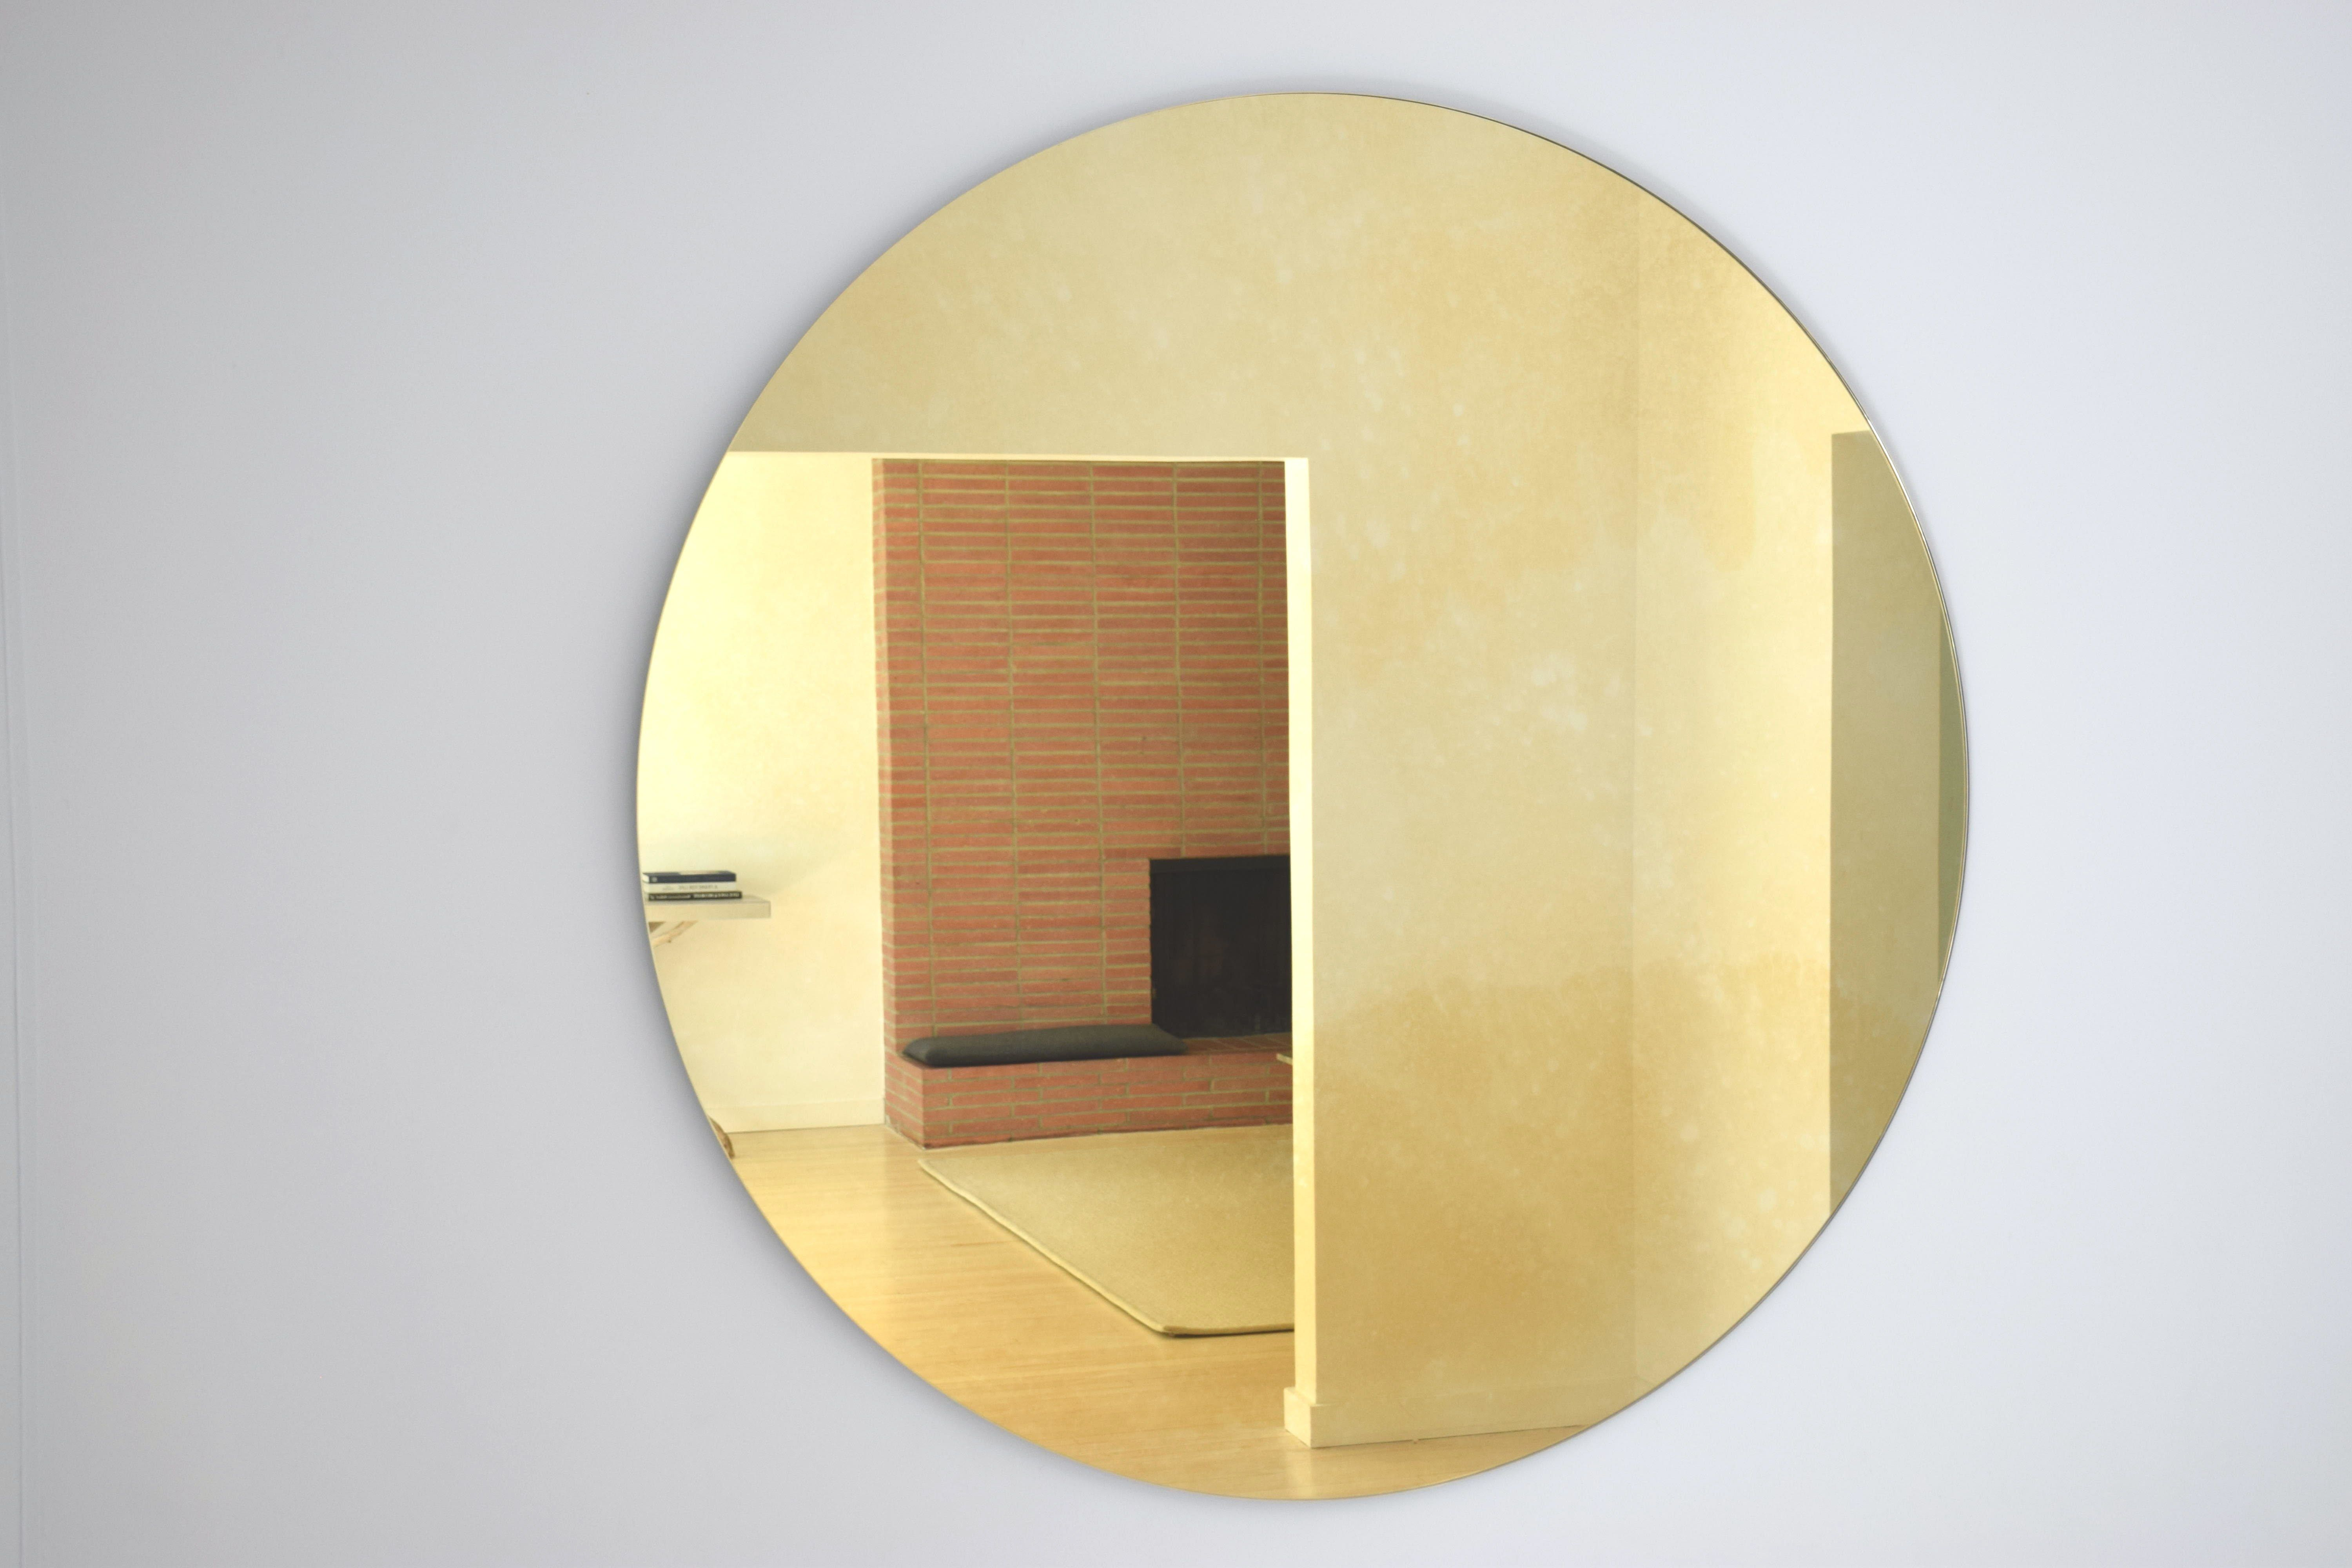 Decorative Wall Mirrors Get a Colorful Makeover   Decorative walls ...